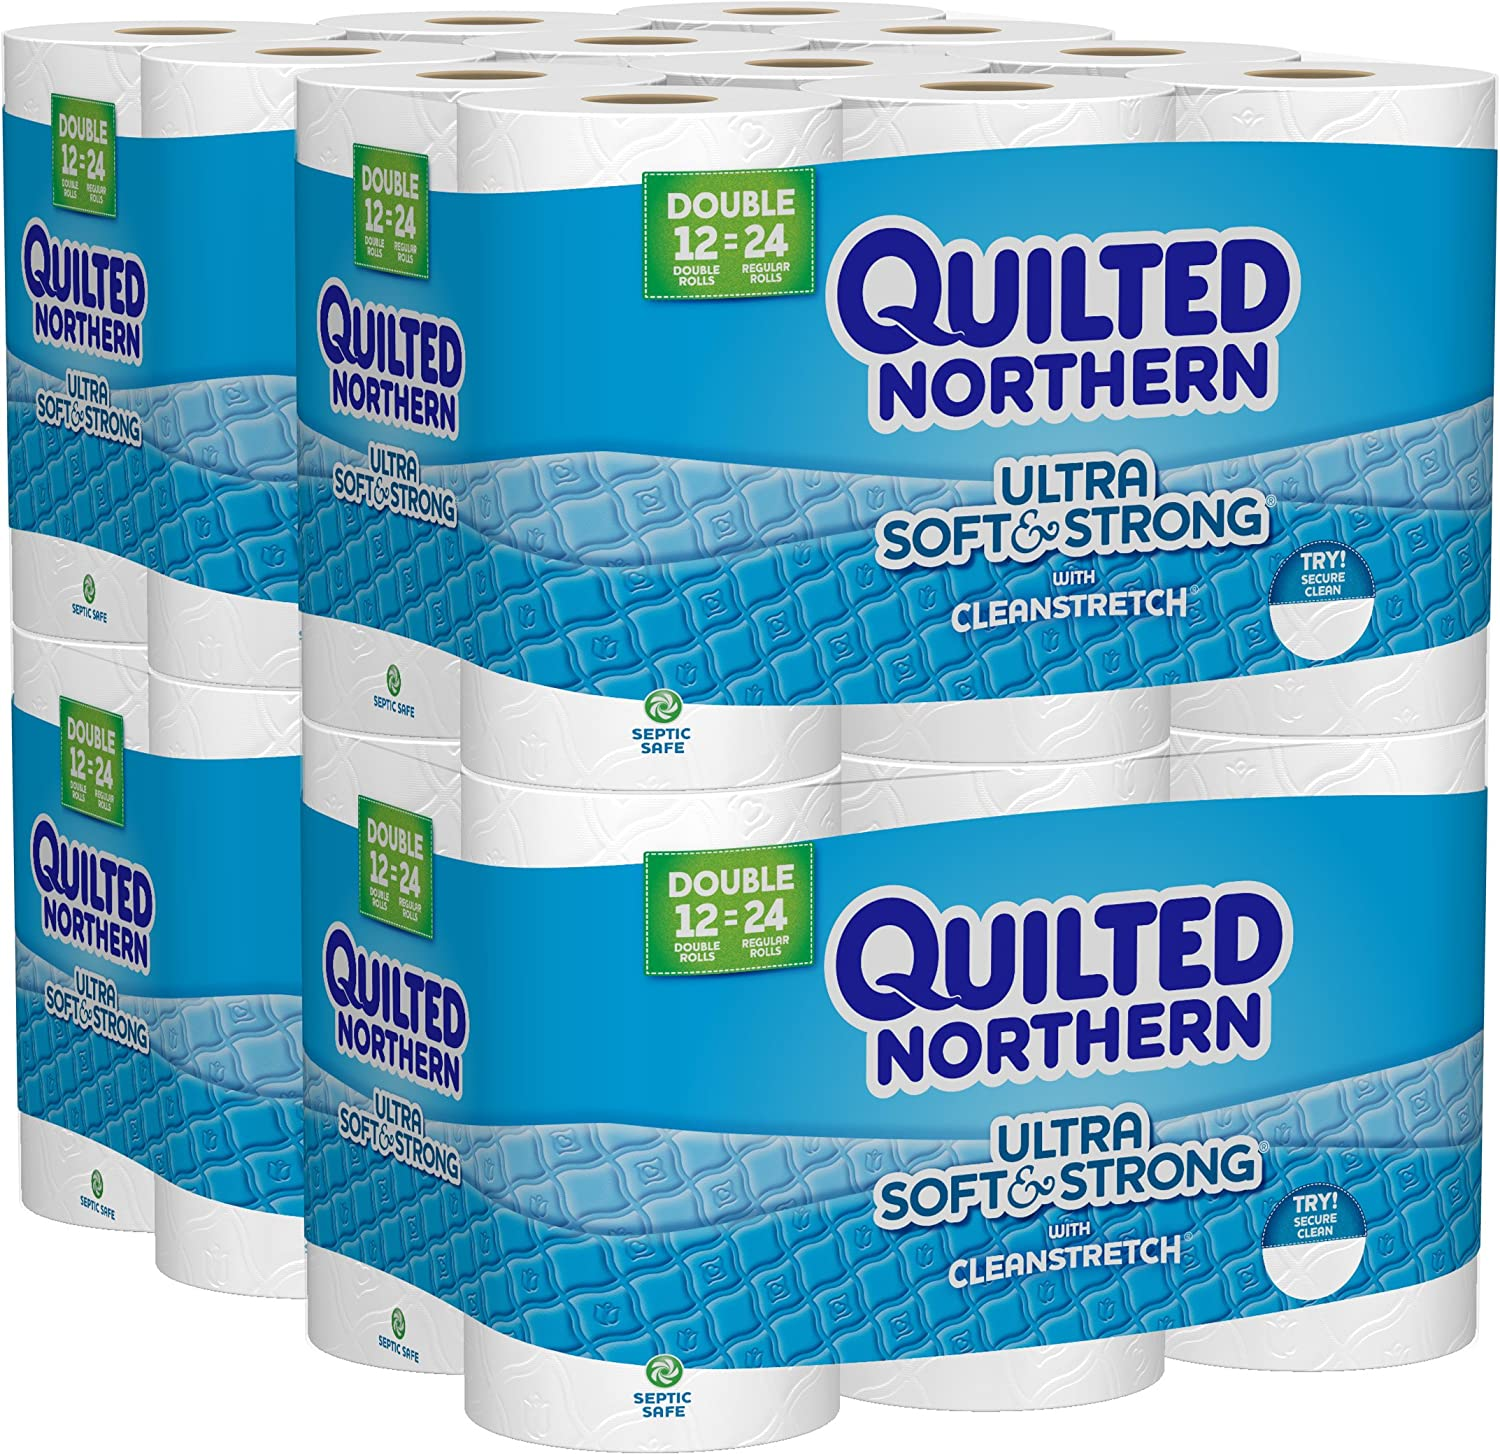 Quilted Northern Ultra Soft Toilet Paper is a high quality toilet paper that's also septic safe